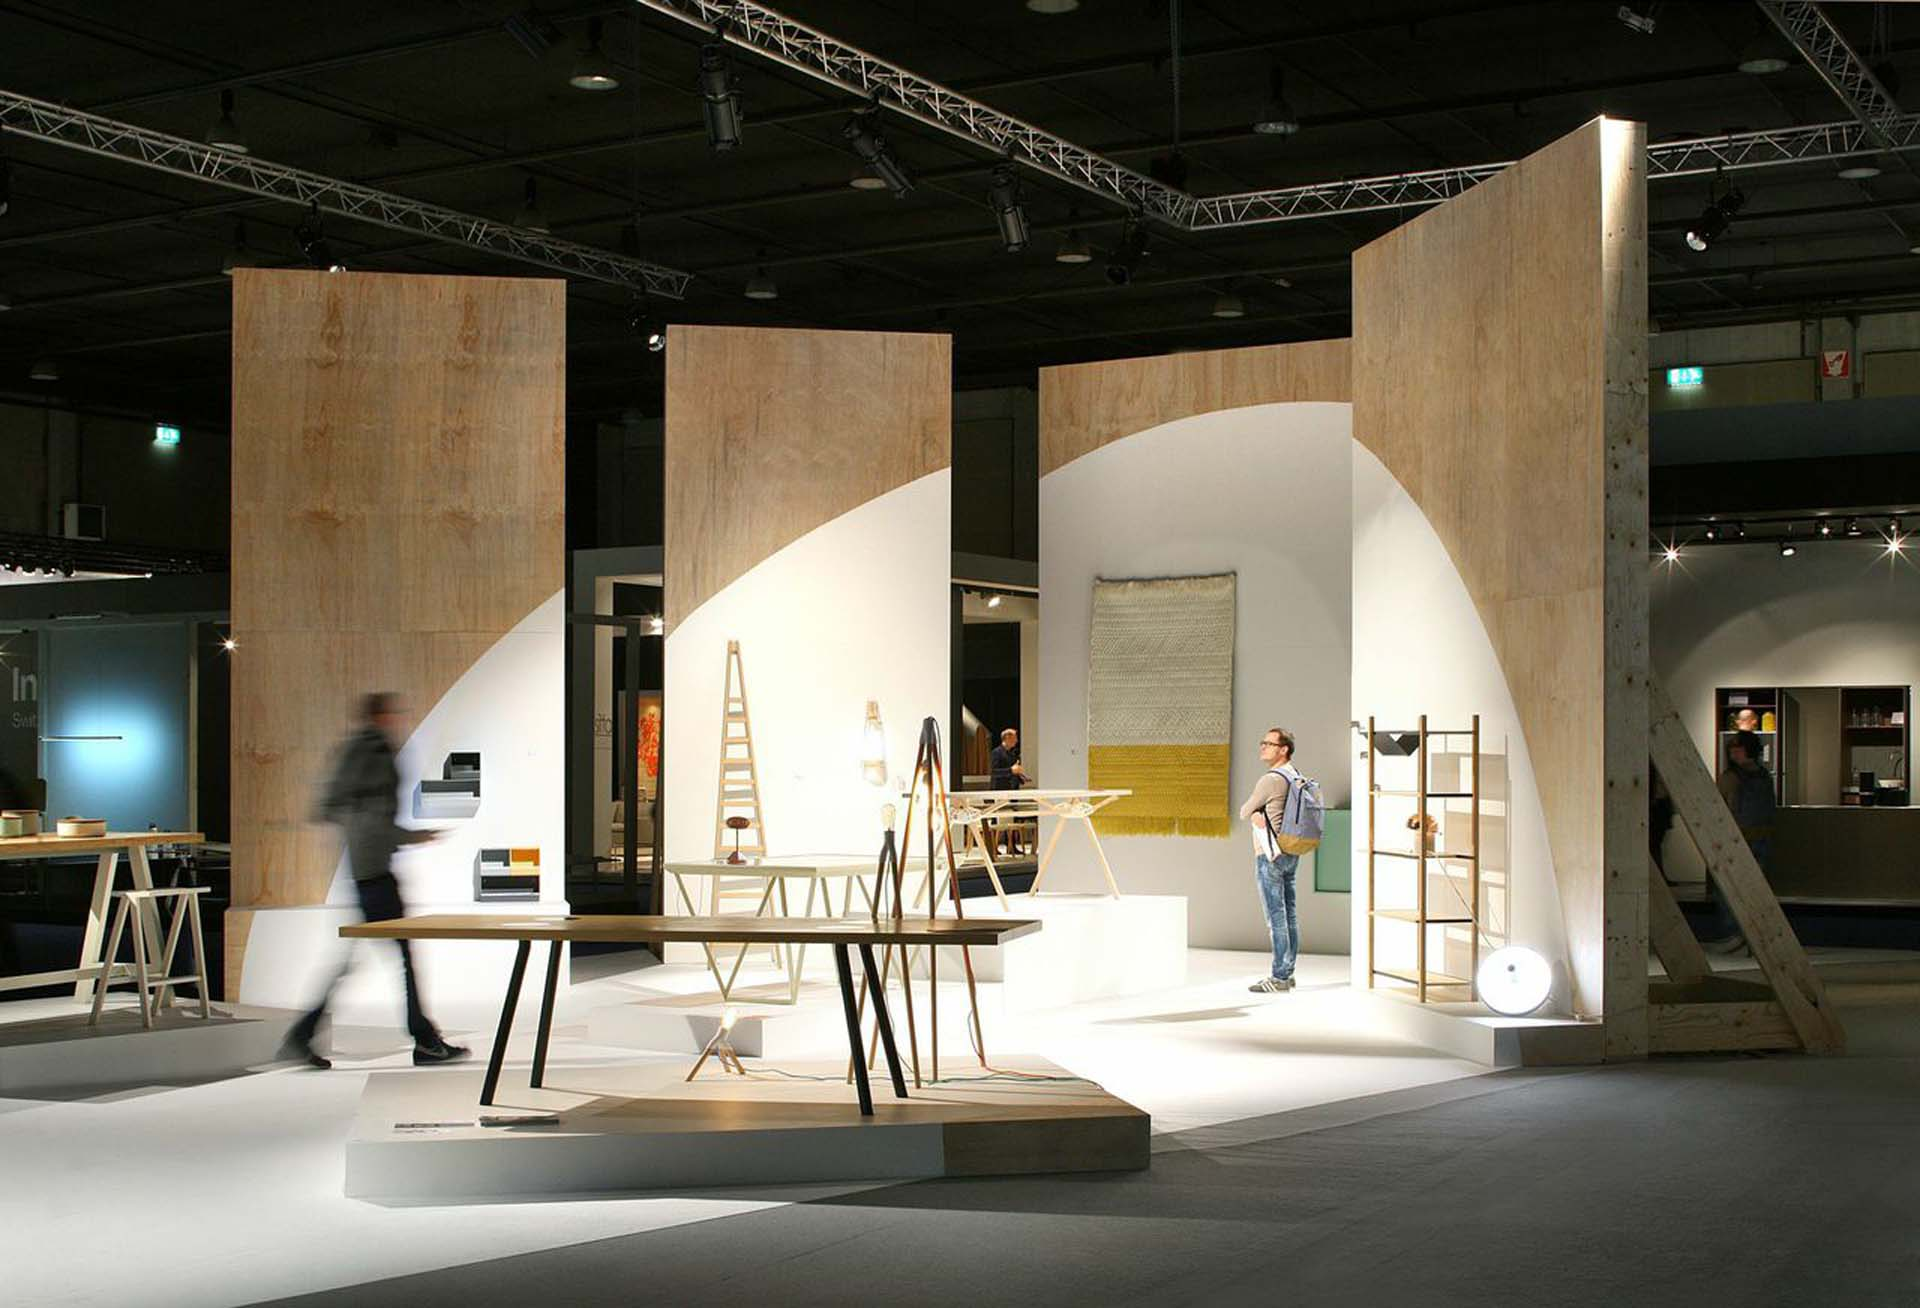 Interview with joseph grima at the kortrijk interieur on for Interieur kortrijk